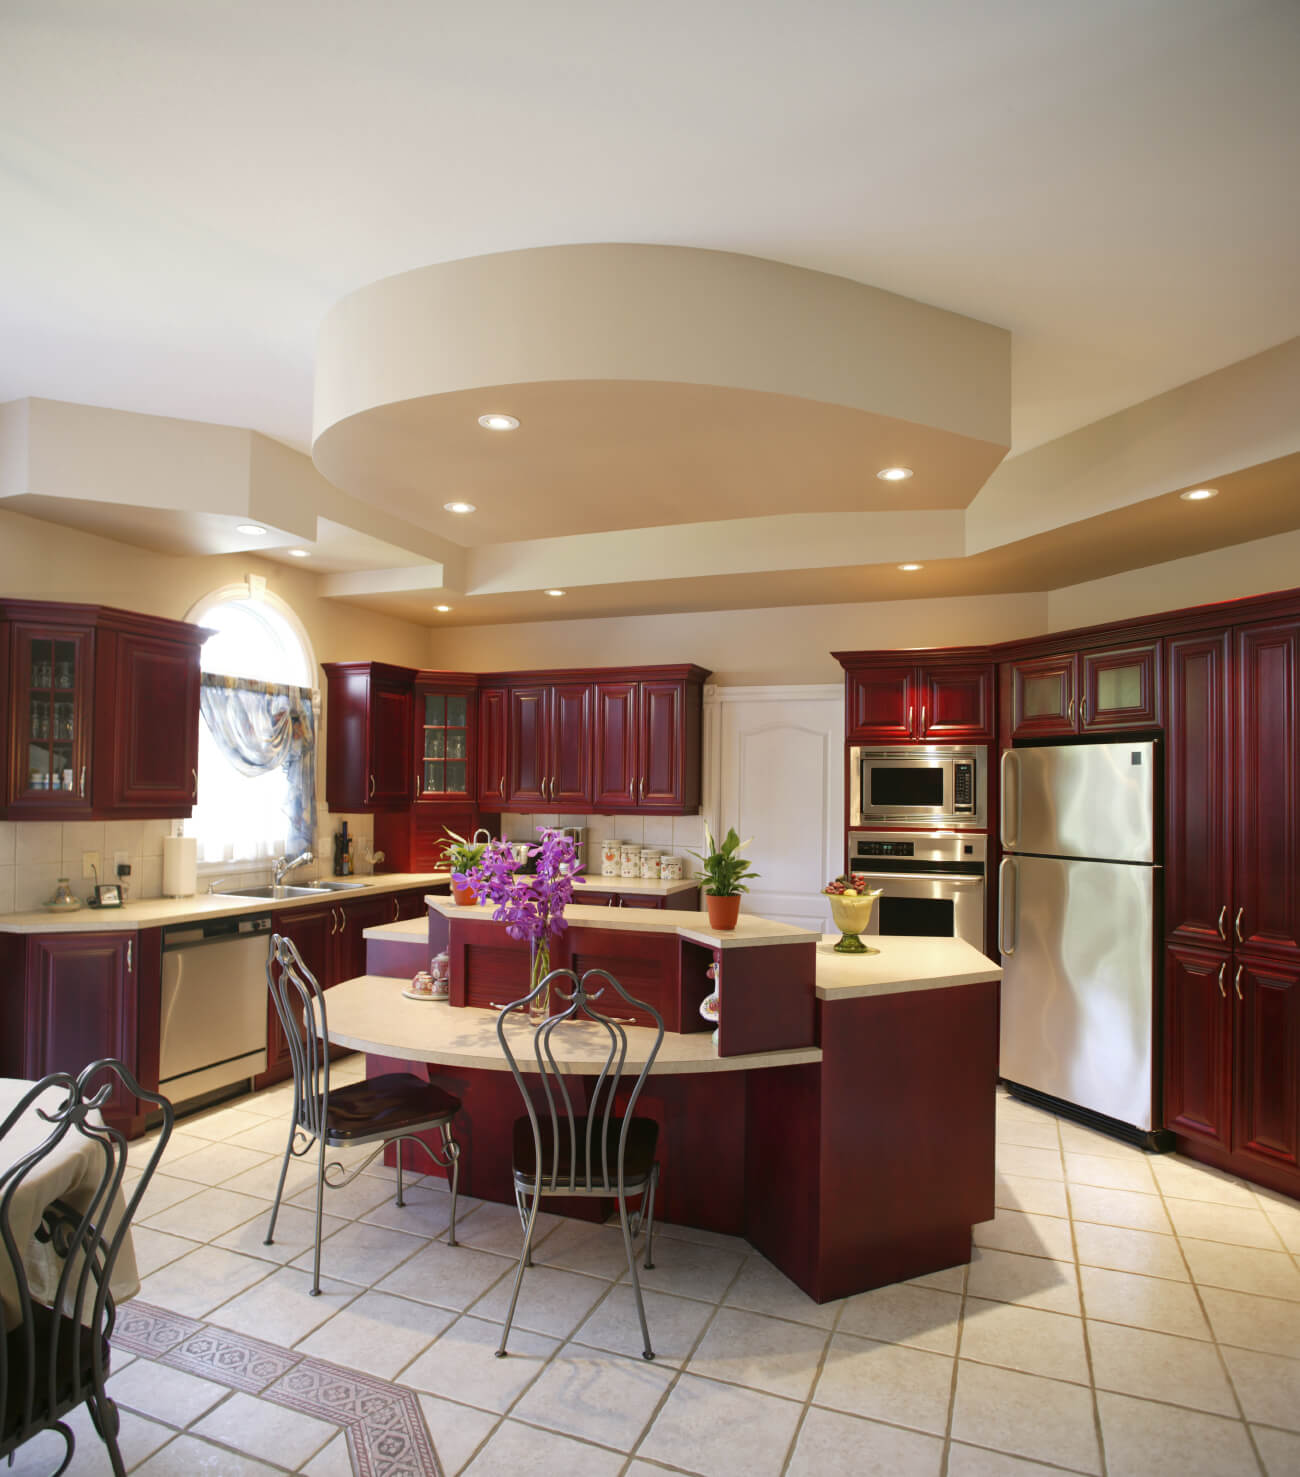 Charmful Red Wood Features Heavily This Contrasting Light Beigetile Ing Kitchens Counters Kitchen Island Ideas Islands Kitchens Central Islands kitchen Islands In Kitchens